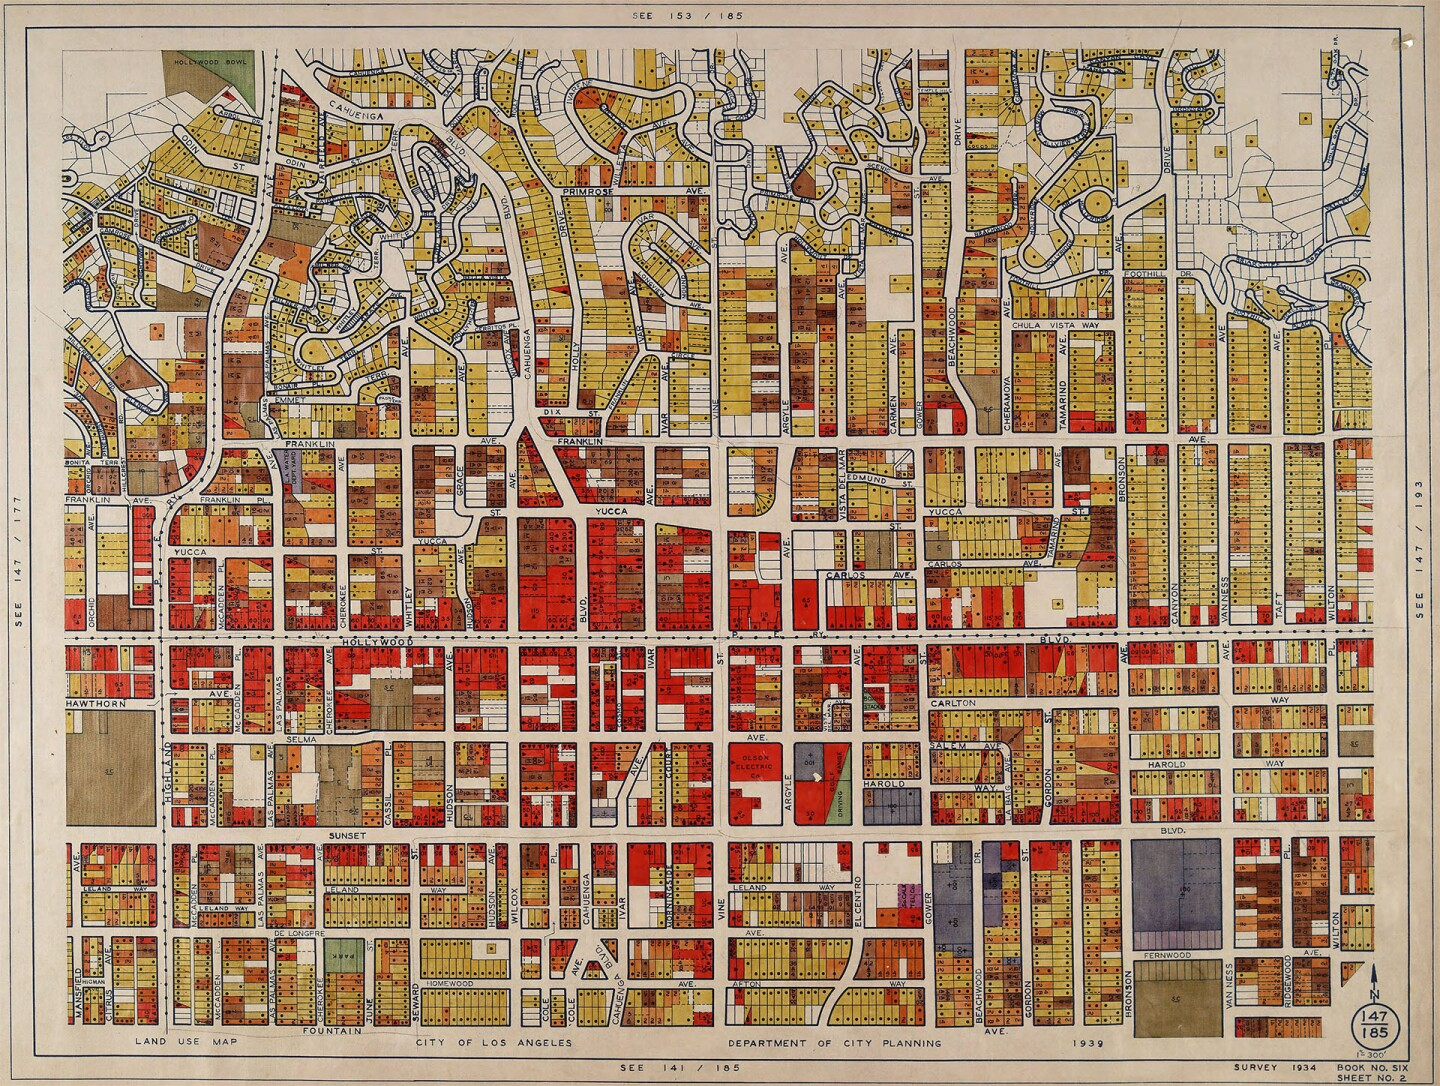 Hollywood District land use survey by the WPA, 1933-1939